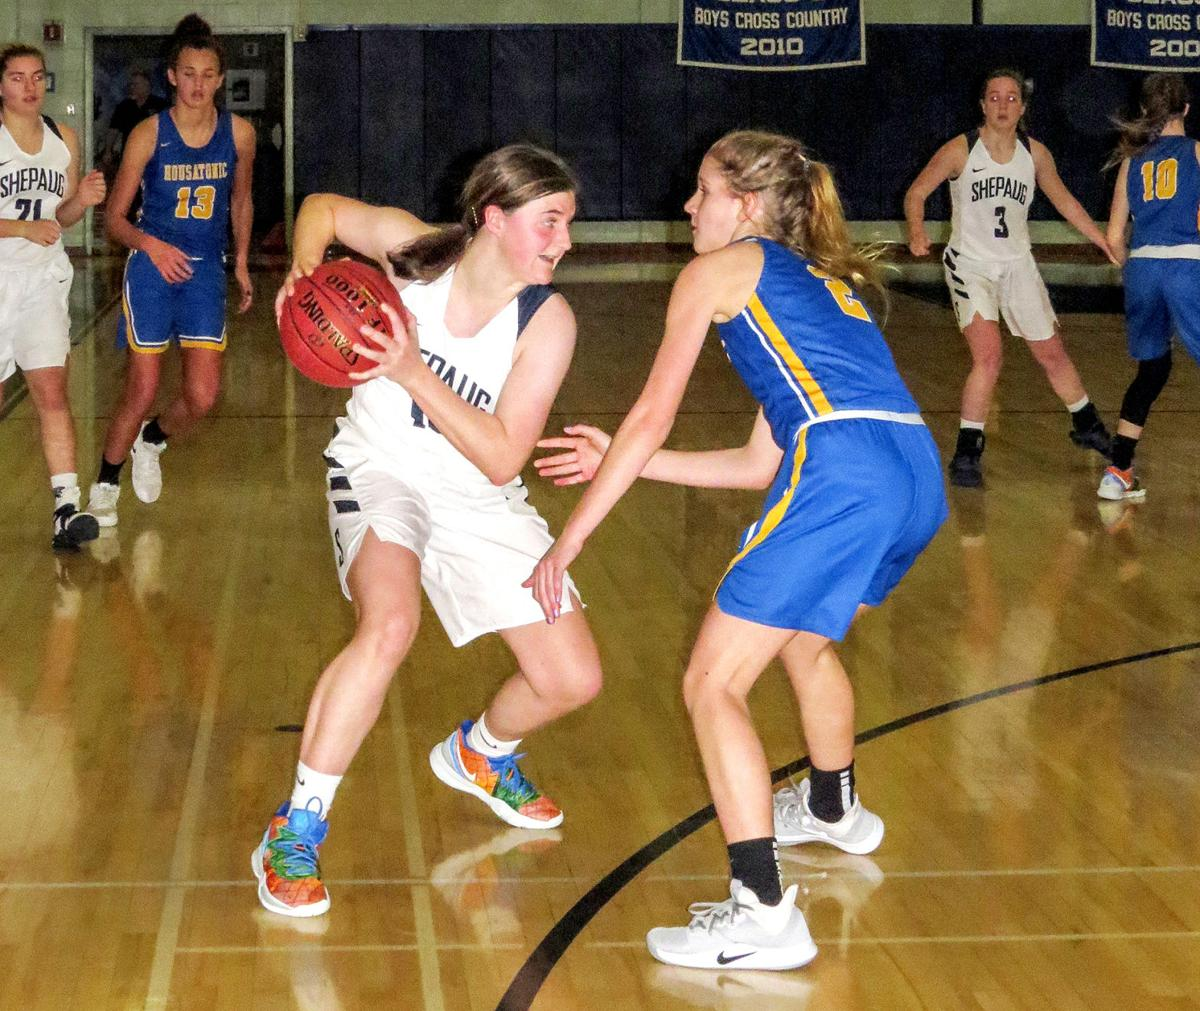 Shepaug Girls' Basketball: Spartans Tie for First Place in League